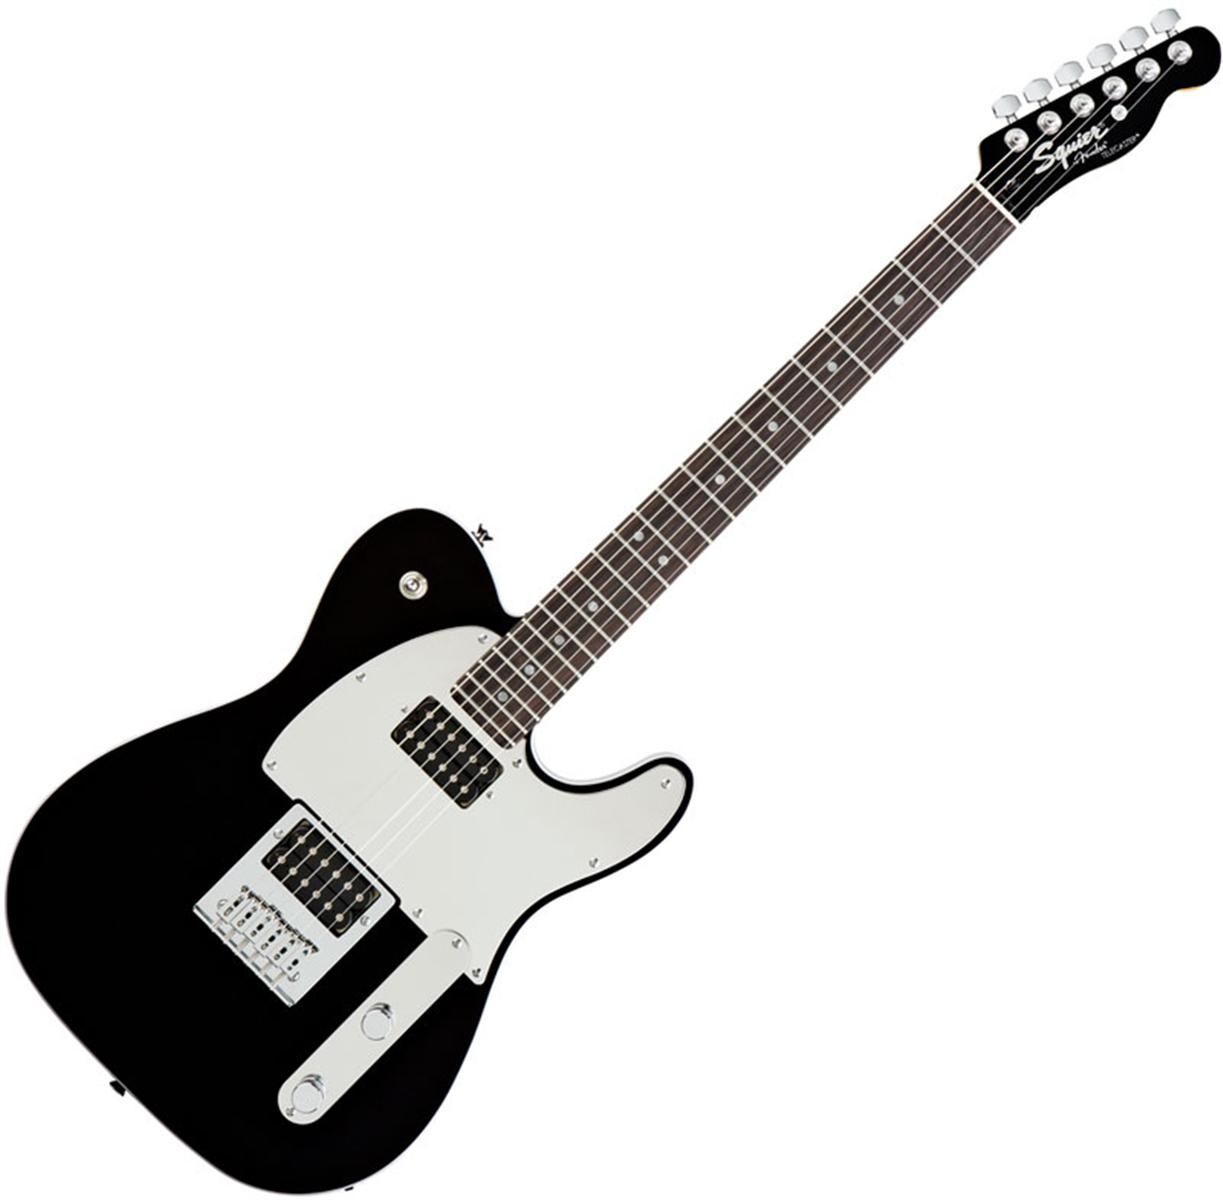 Black Electric Guitar Clip Art Free Clipart Images